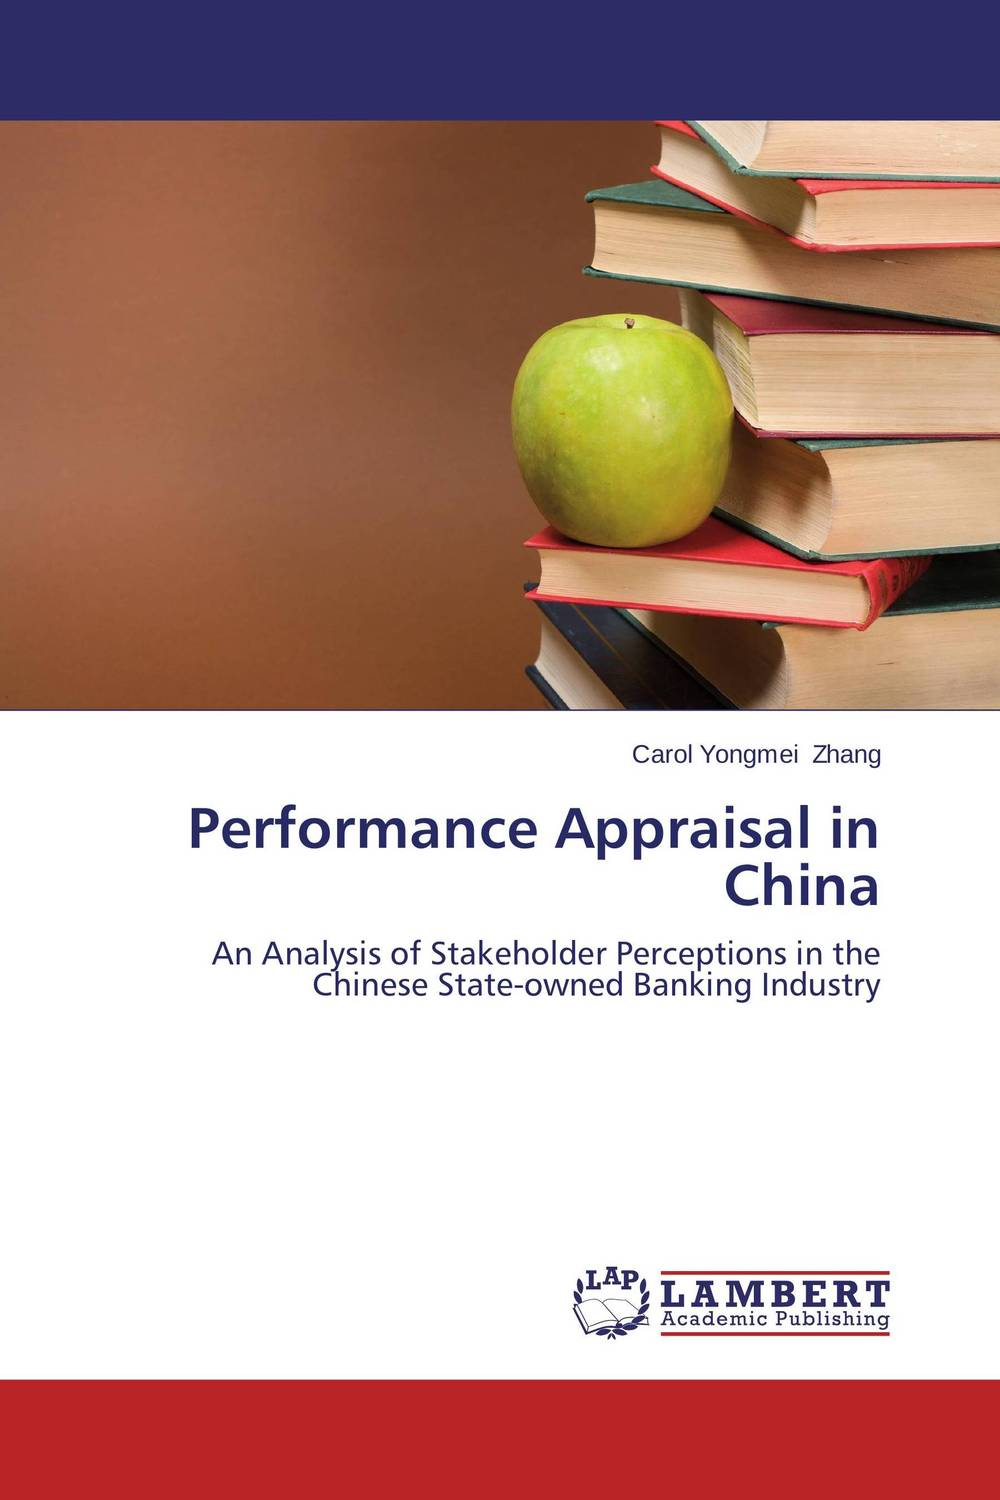 Performance Appraisal in China